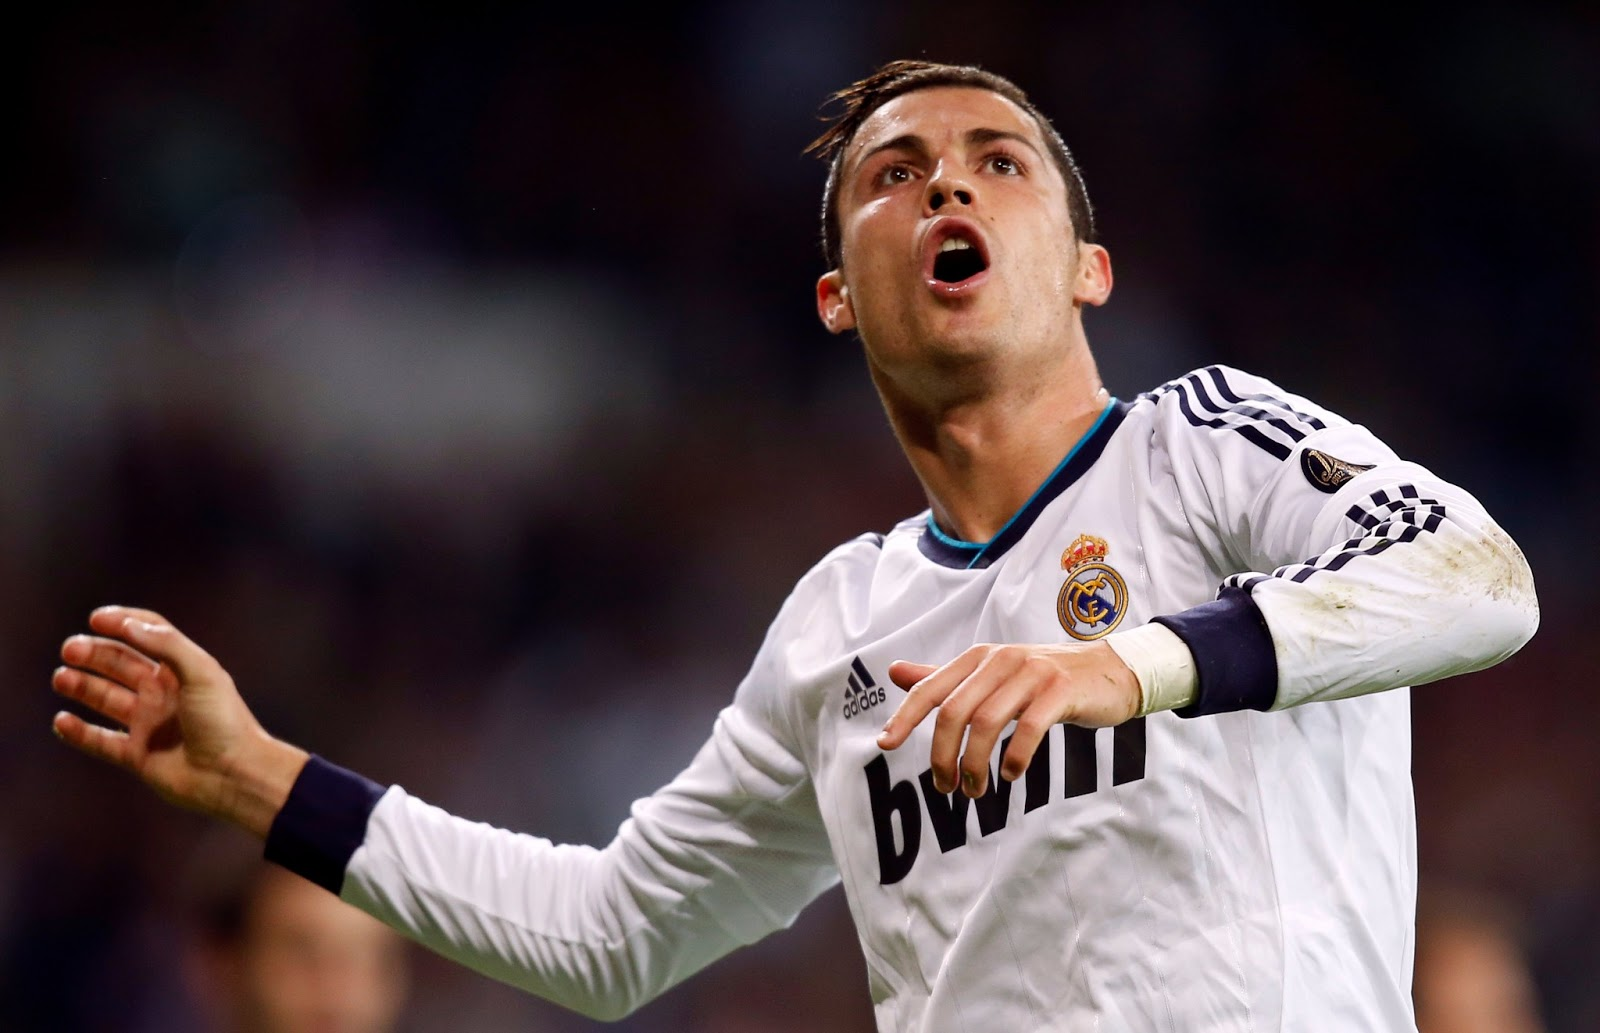 Cristiano ronaldo original hd wallpapers 2013 real madrid cristiano ronaldo celebration hd voltagebd